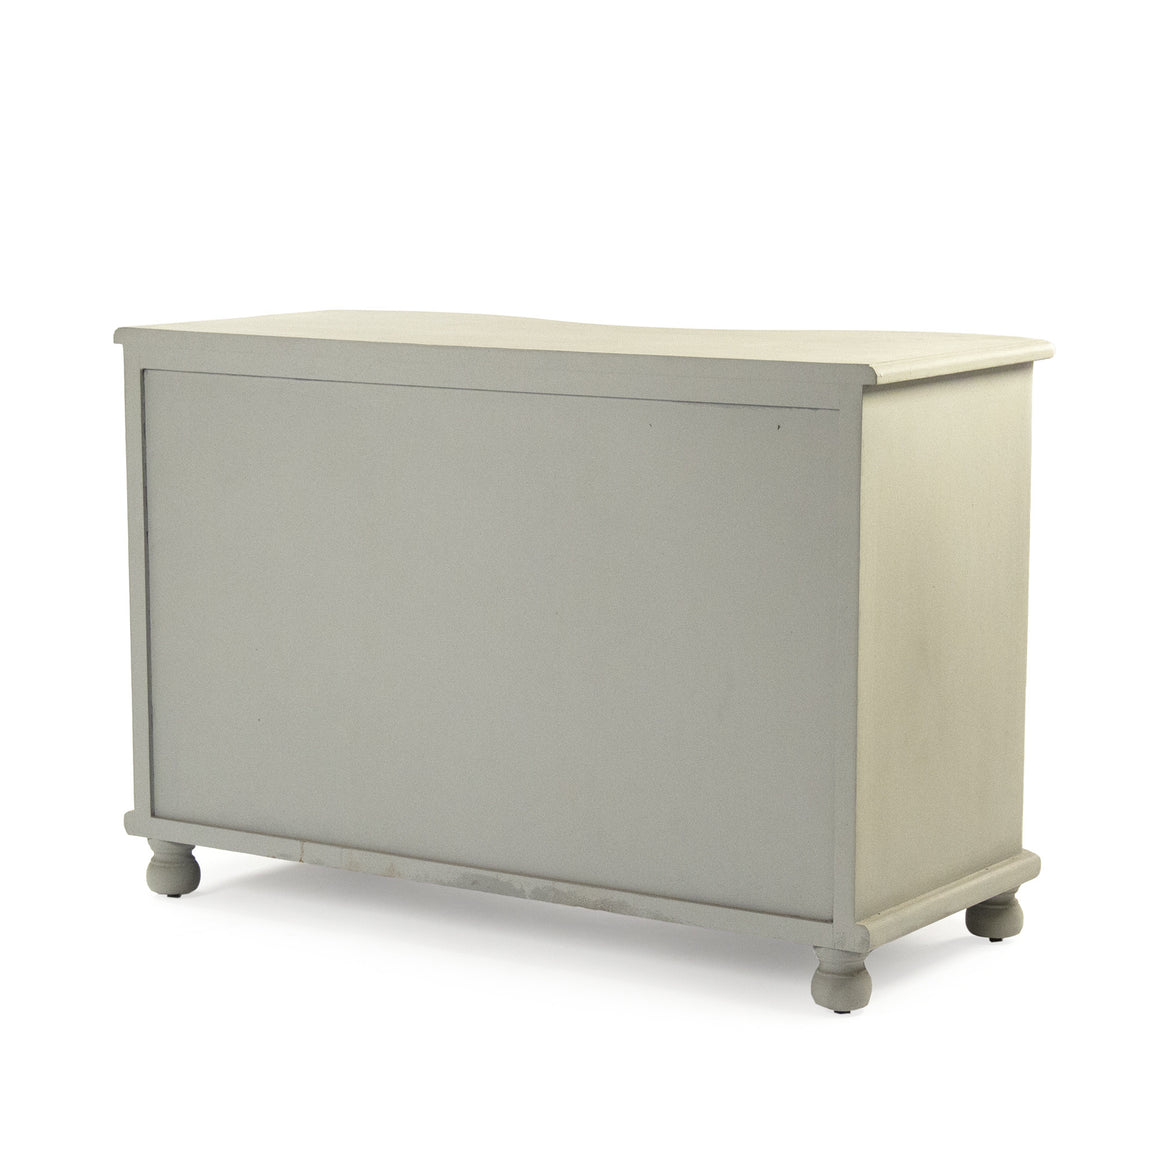 Chest / Commode - Chloe Chest